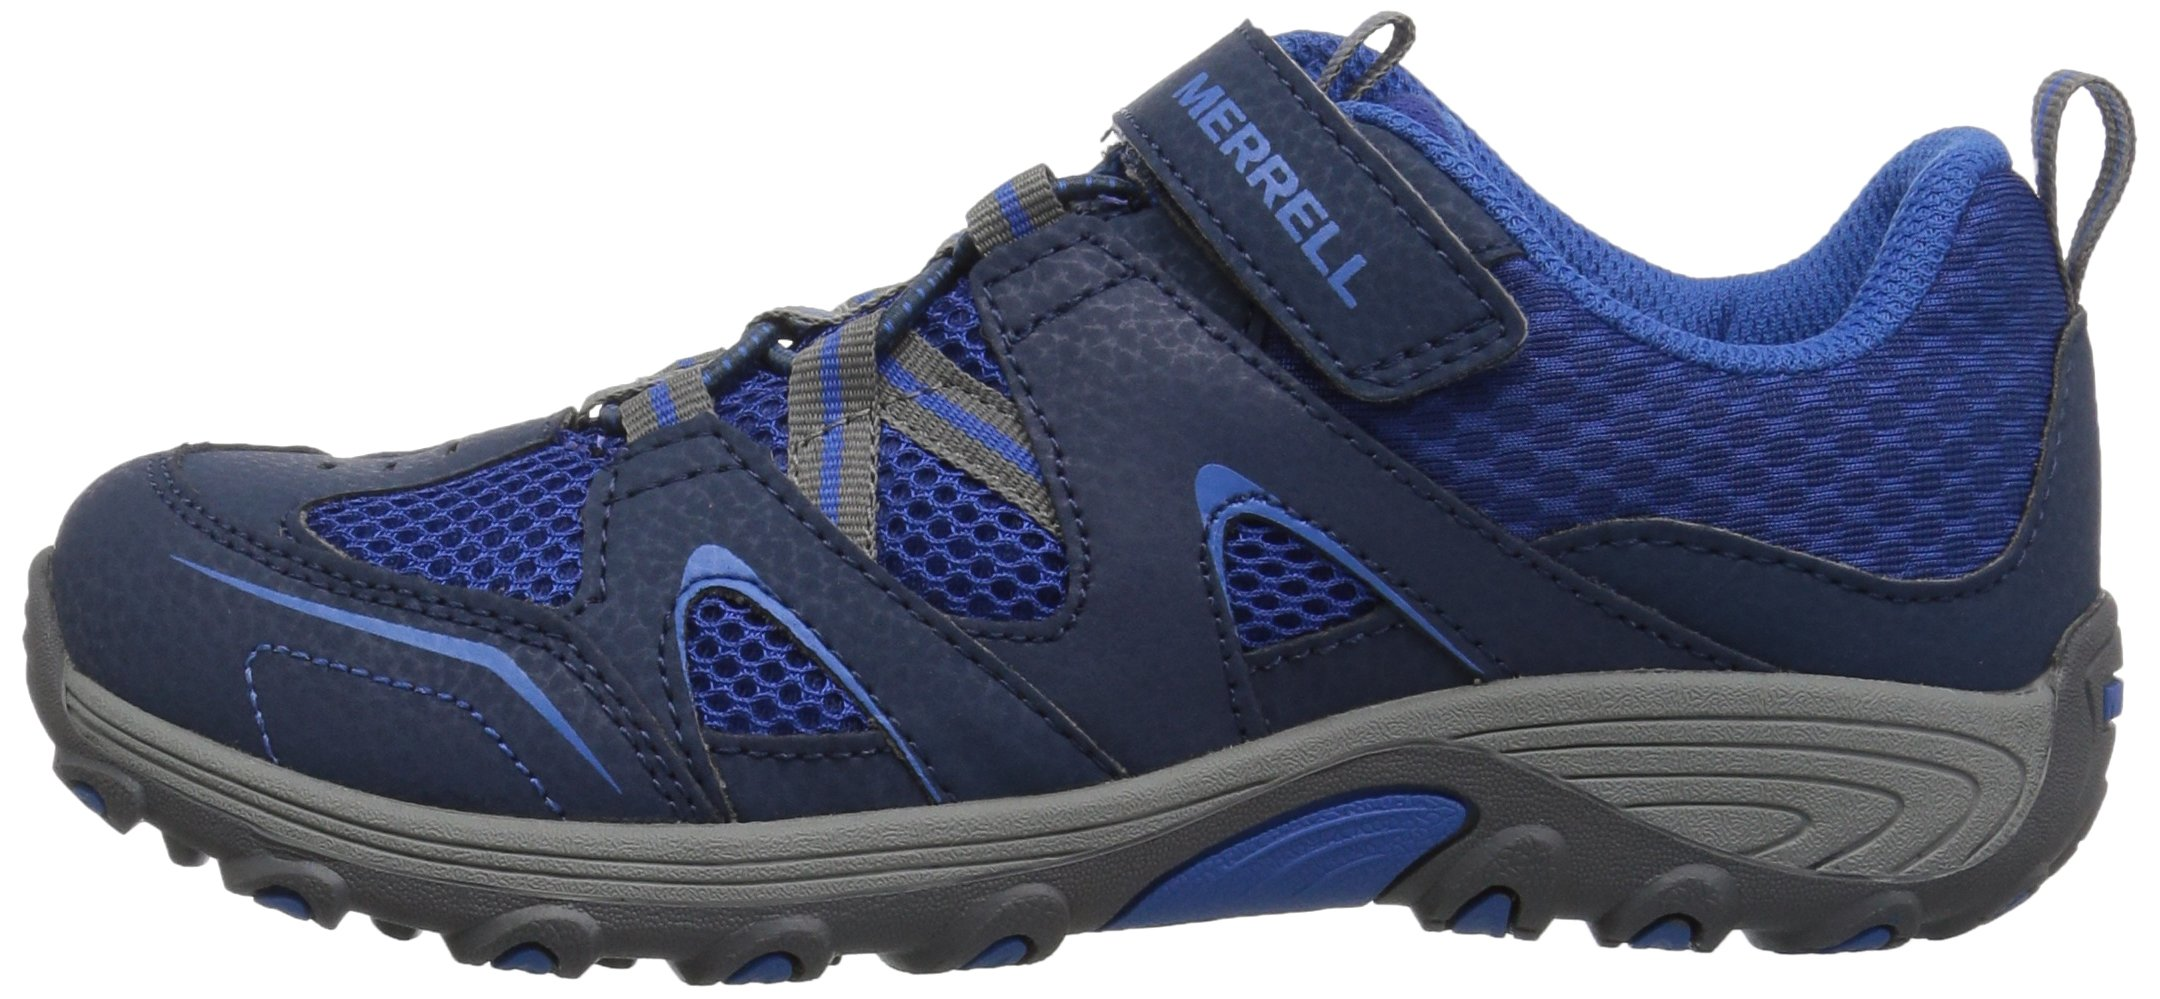 Merrell Trail Chaser Hiking Shoe, Navy, 4 M US Big Kid by Merrell (Image #5)